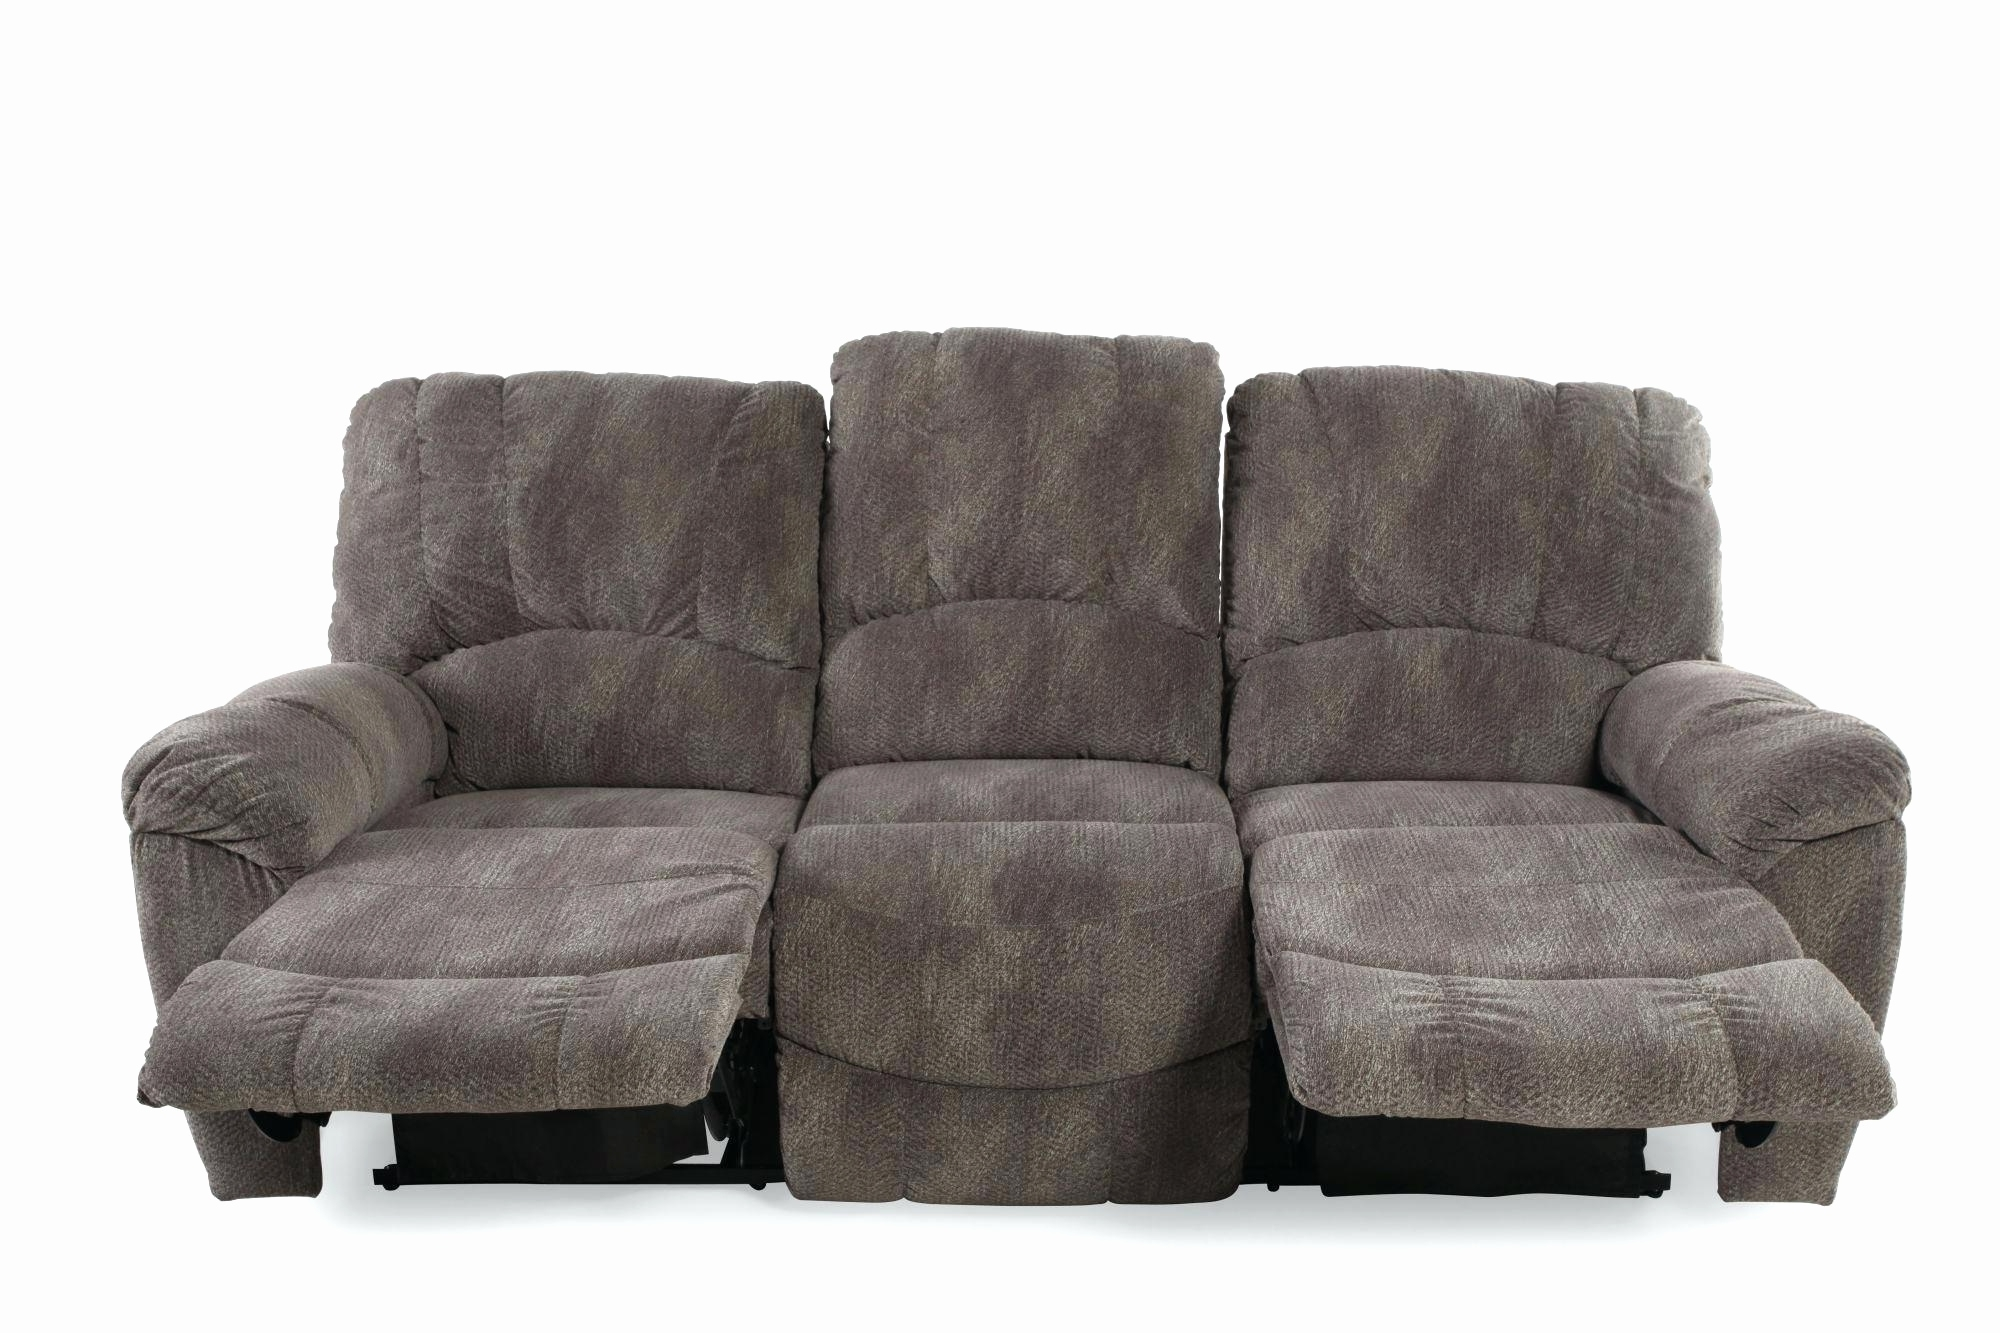 Best Lazy Boy L Shaped Sofa 2018 – Couches Ideas With Best And Newest Lazy Boy Chaise Lounge Chairs (View 3 of 15)